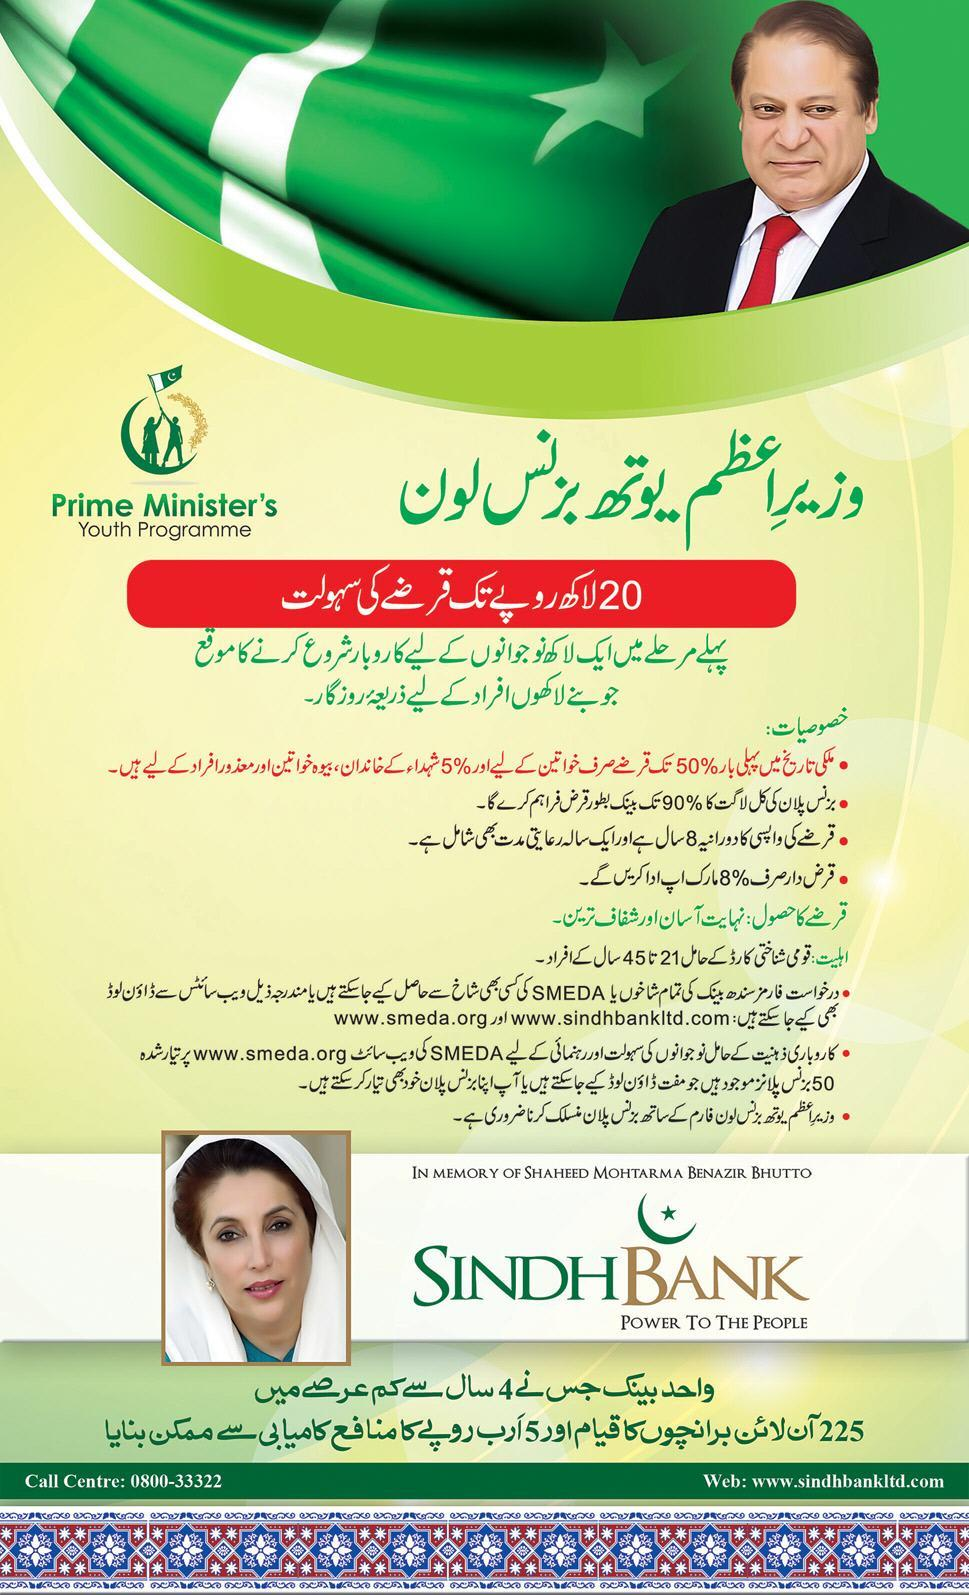 Sindh Bank PM Youth Business Loan Scheme 2015 Form Registration